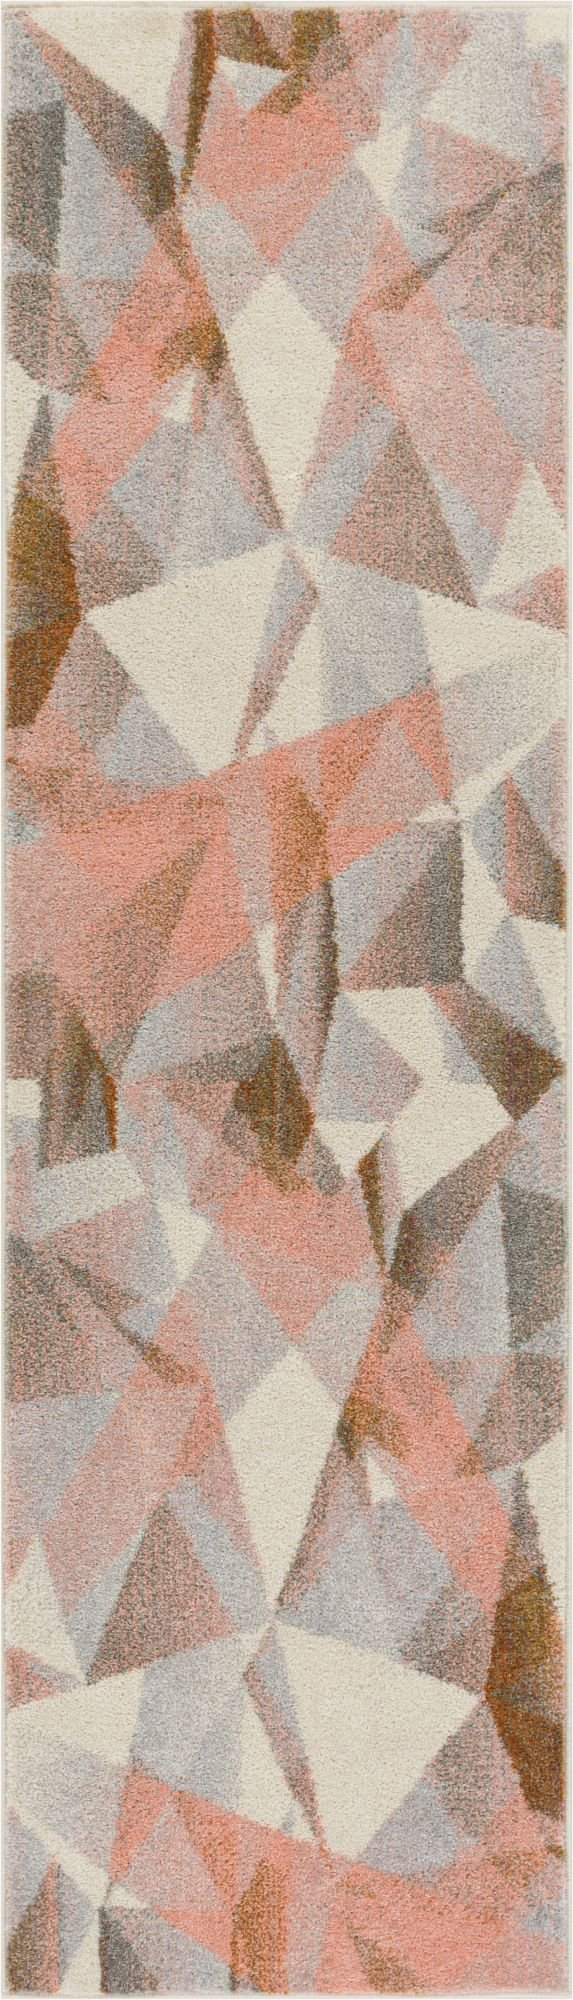 """Well Woven Barra Blush Pink Multi-Color Modern Geometric Triangle Pattern Abstract 2x7 (2'3"""" x 7'3"""" Runner) Area Rug Contemporary Thick Soft Plush - Thick, plush 0.4"""" pile height. 100% polypropylene power loomed in Turkey. Stain resistant and fade resistant. 100% jute backing is safe for wood floors. Extremely durable and very easy to clean, made to last for years. Abstract, geometric pattern of interlocting triangles with subtle shading and soft, trendy colors. Size: 2'3"""" x 7'3"""" Runner - runner-rugs, entryway-furniture-decor, entryway-laundry-room - 81p%2B6gjfVGL -"""